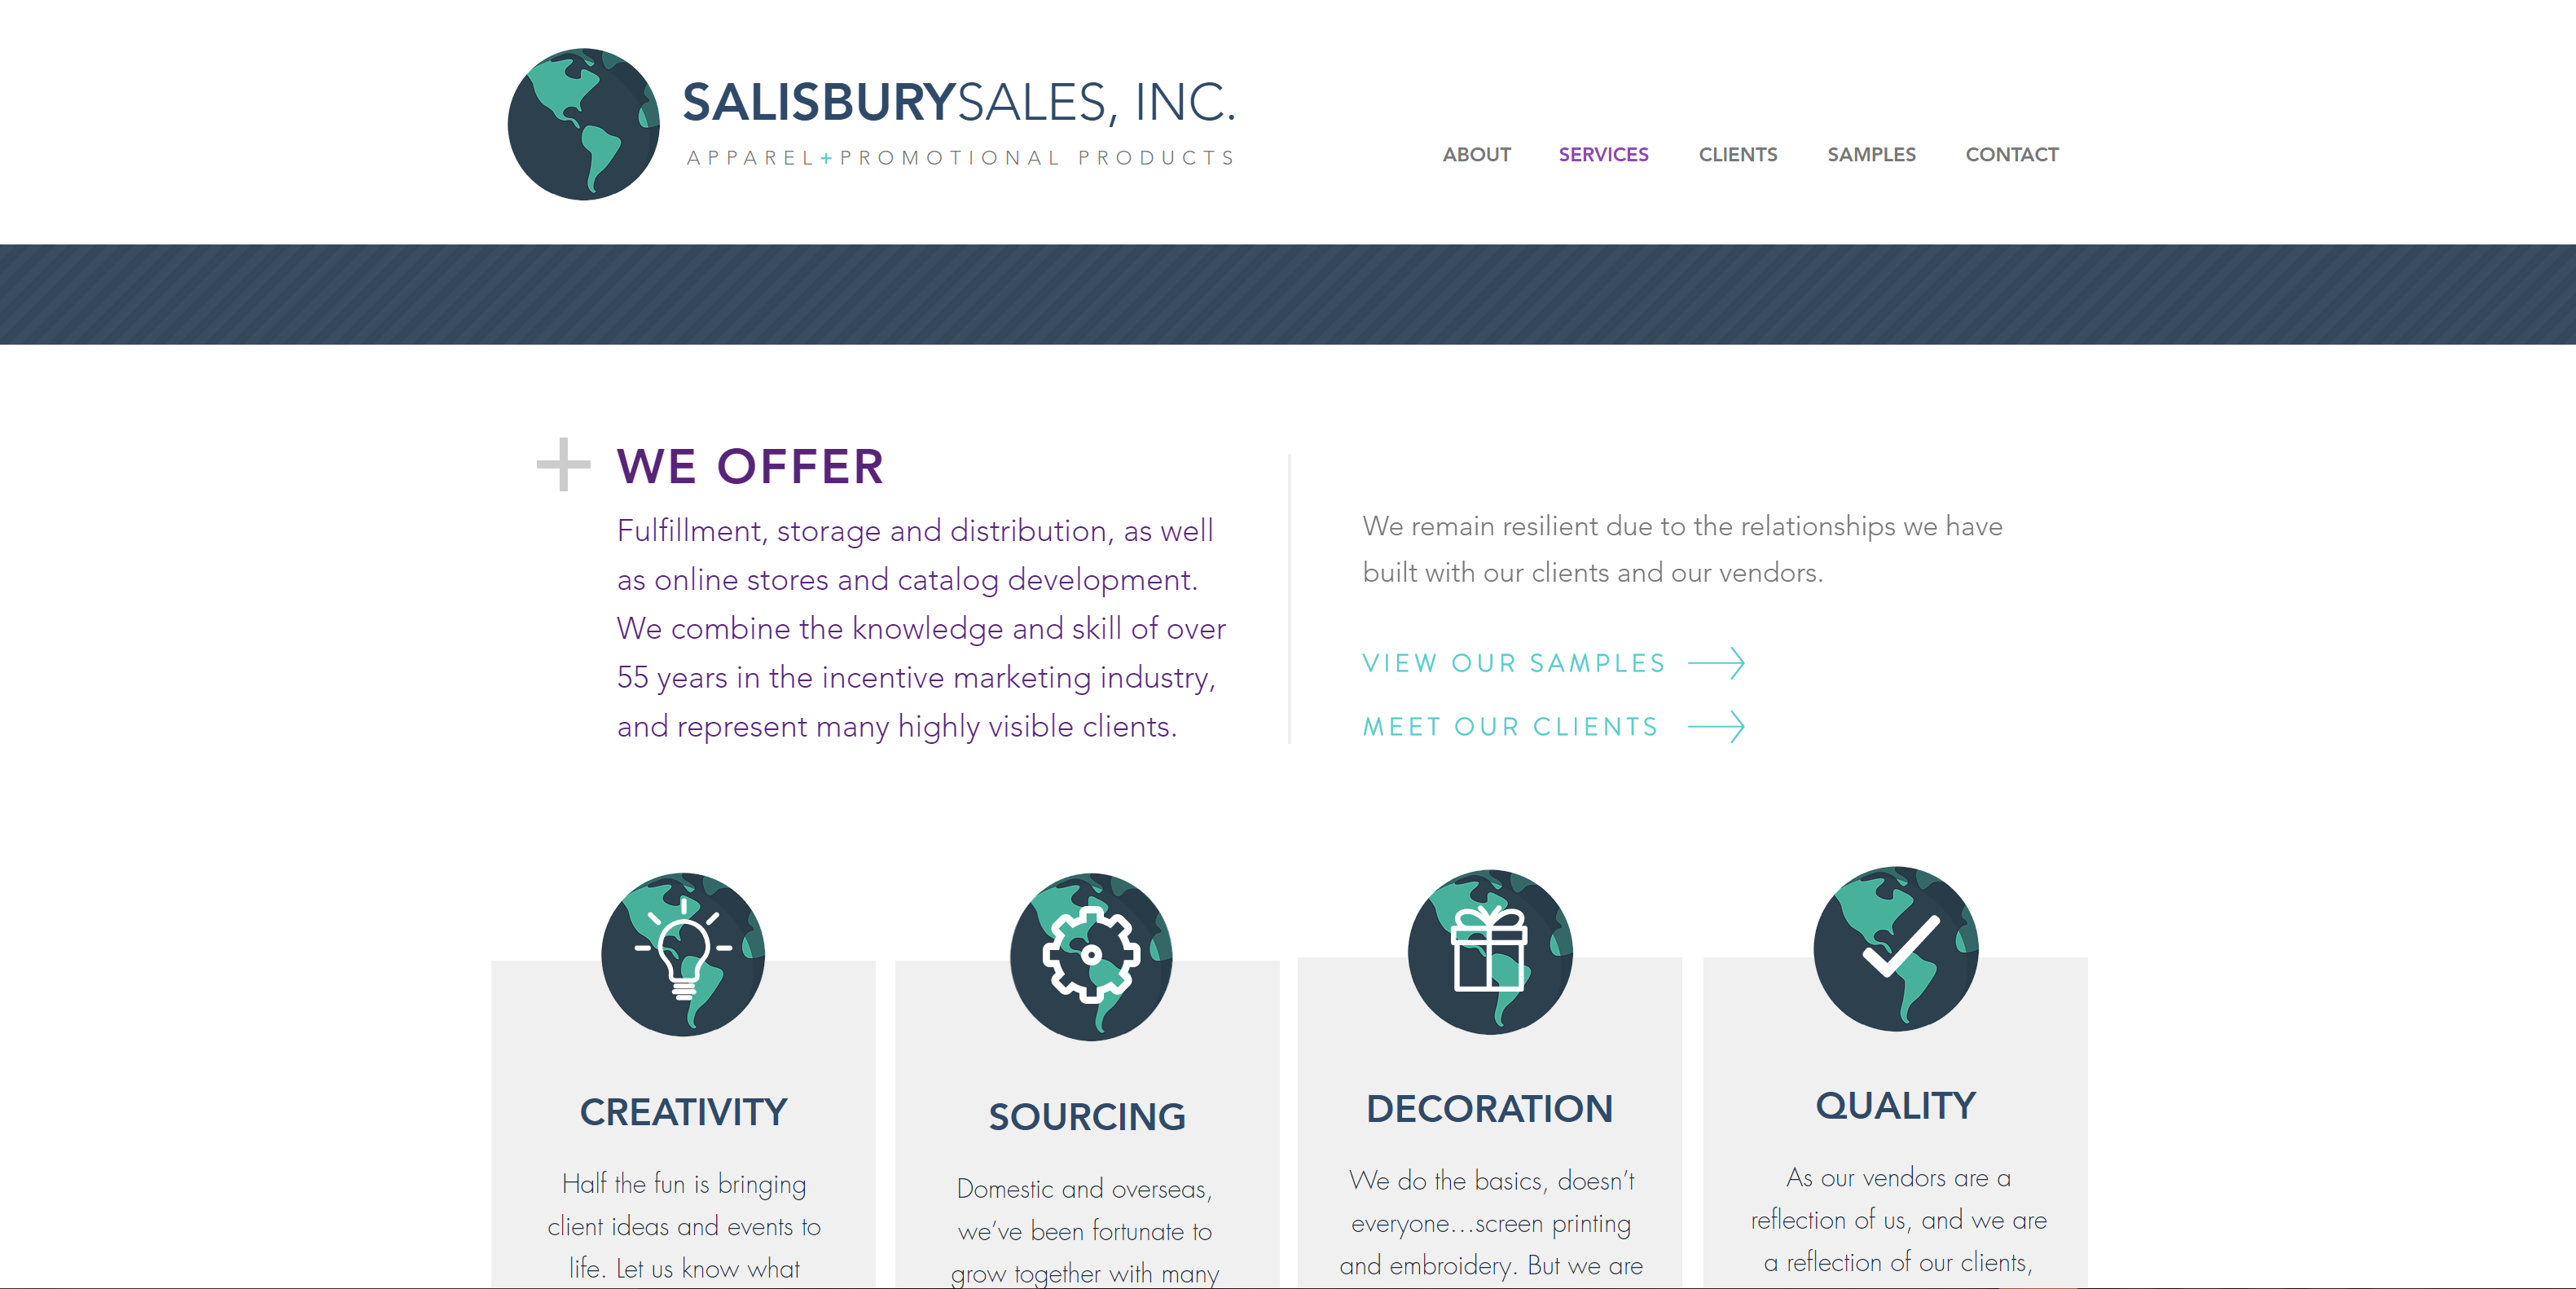 Sarah-Cas-Graphic-Design-Website-Design-Salisbury-Sales-04